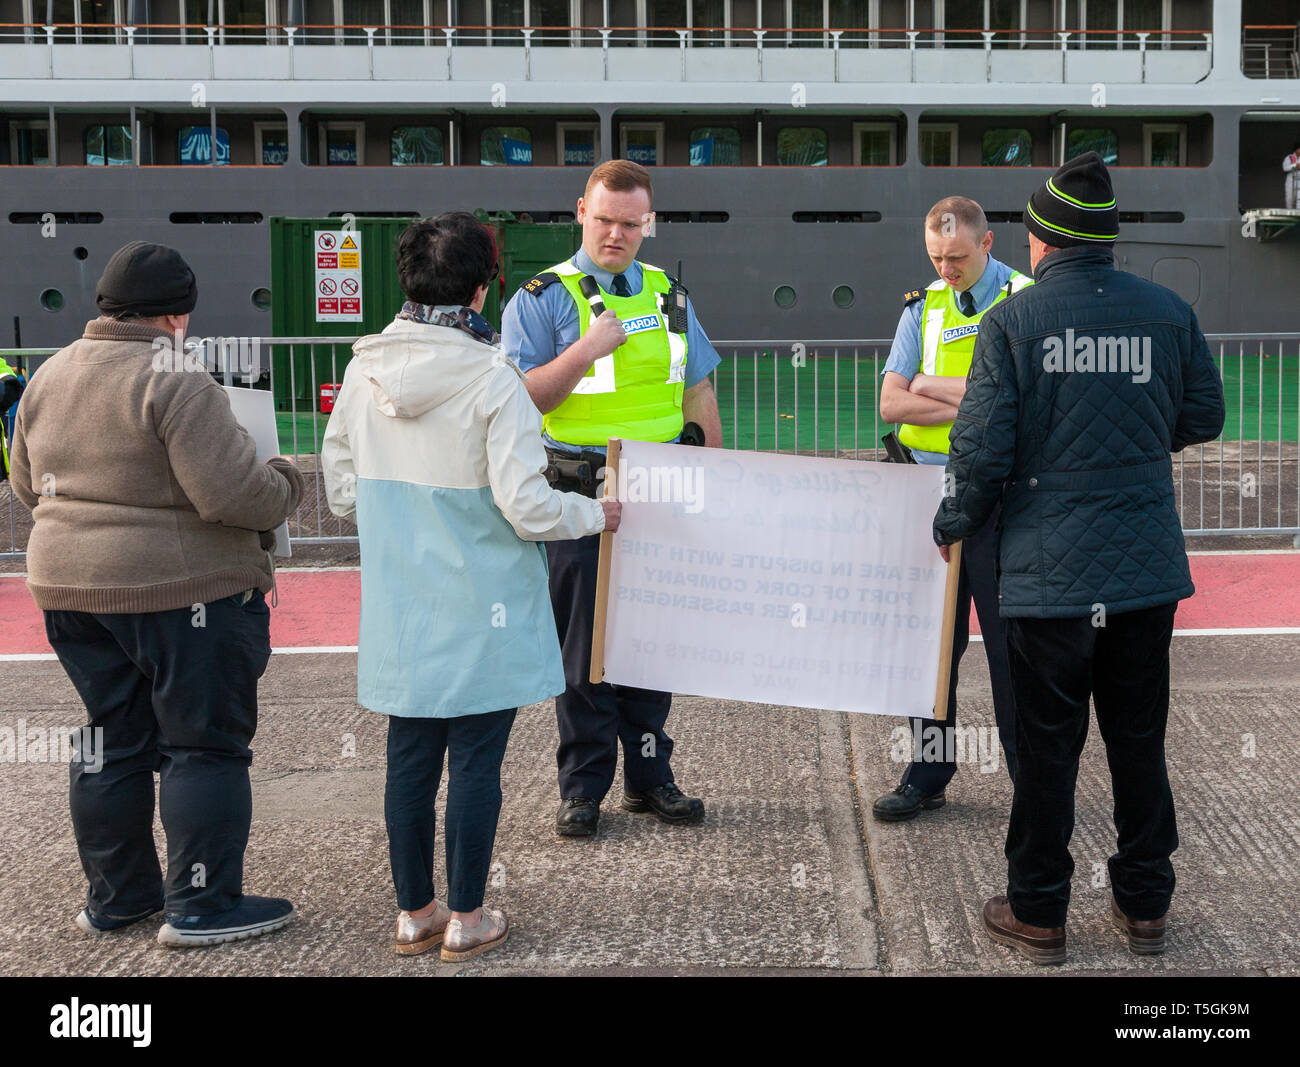 Cobh, Cork, Ireland. 25th April, 2019. Members of An Garda Síochána requesting protesters to vacate the deep water quay,  at the arrival of the cruise liner L'Austral. The protesters refused to leave as they view the deep water quay as a public right of way. The protest is about  the decision by the Port of Cork Company to close the quayside public walk during the arrival of cruise liners in Cobh, Co. Cork, Ireland. Credit: David Creedon/Alamy Live News - Stock Image